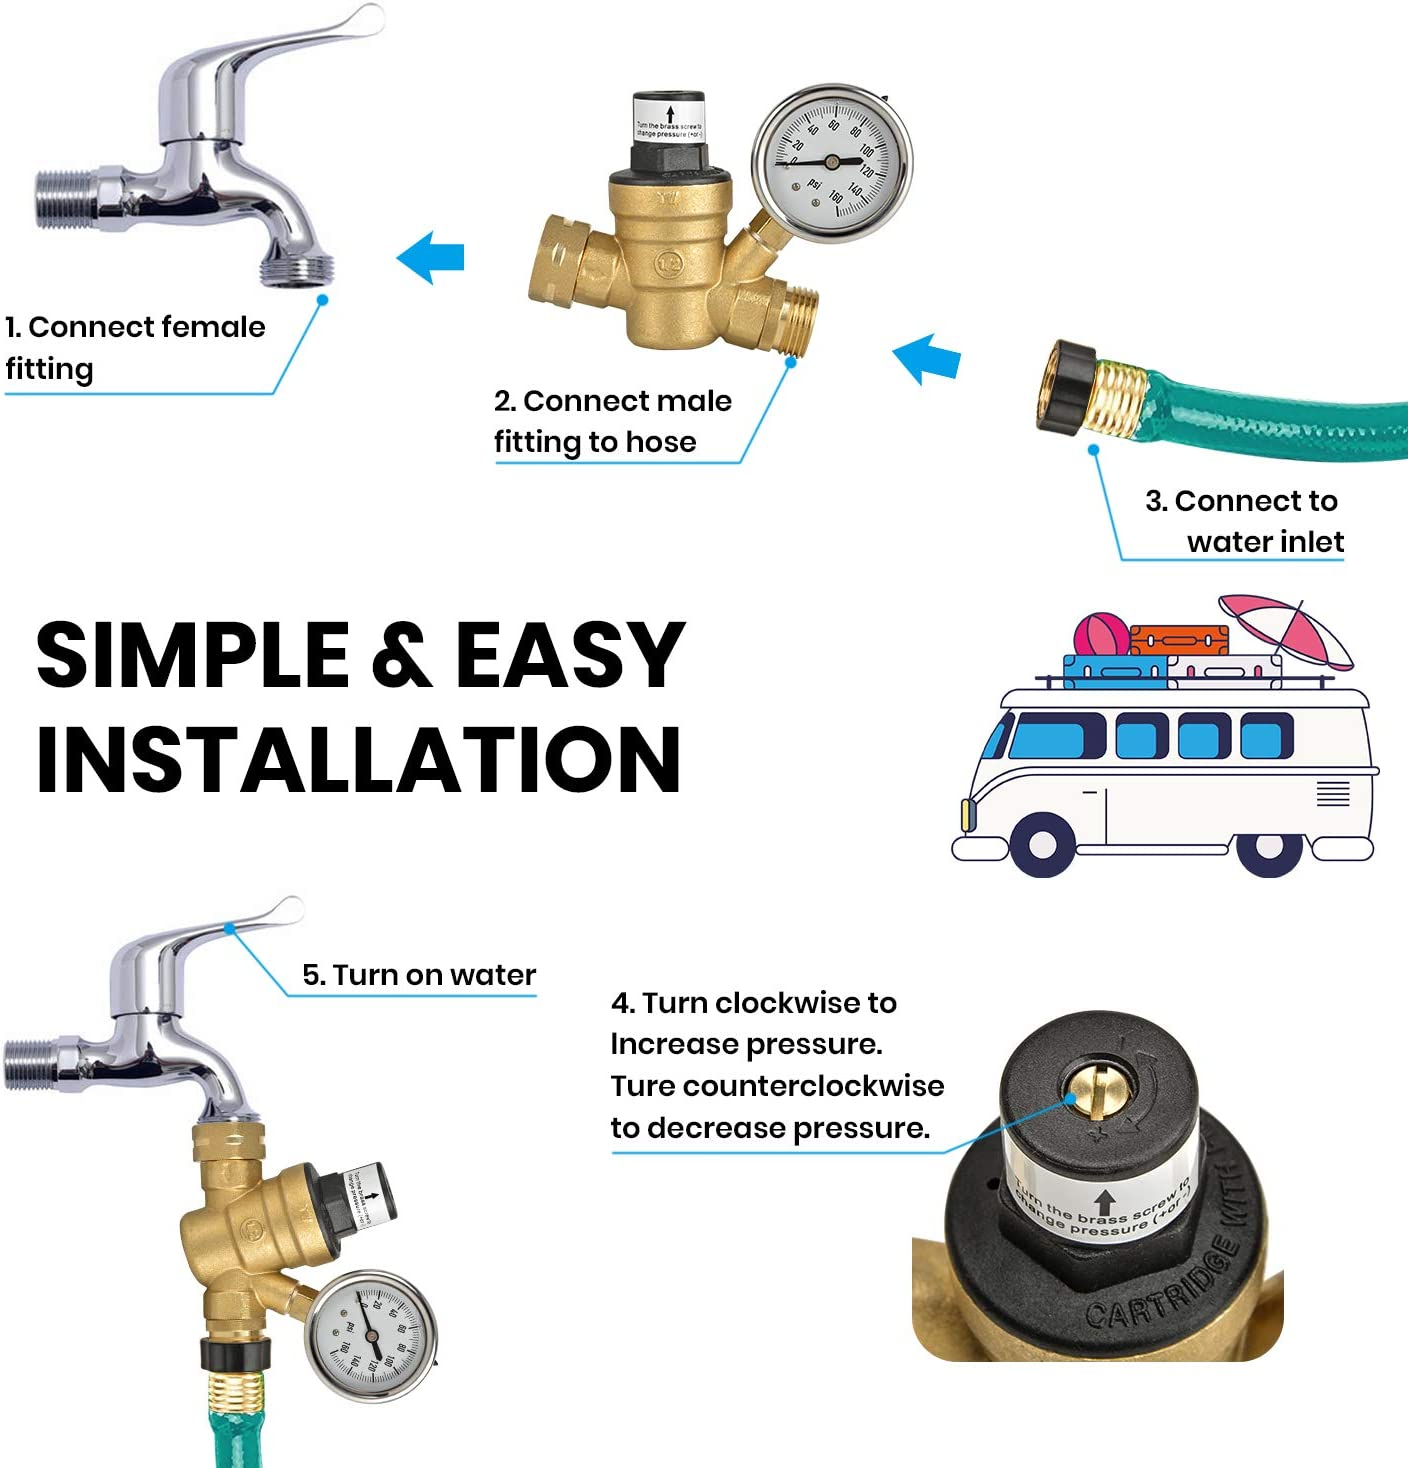 Hitechluxe RV Water Pressure Regulator Valve Lead-Free Brass Adjustable Water Pressure Reducer with Gauge and Inlet Screened Filter for Camper Travel Trailer